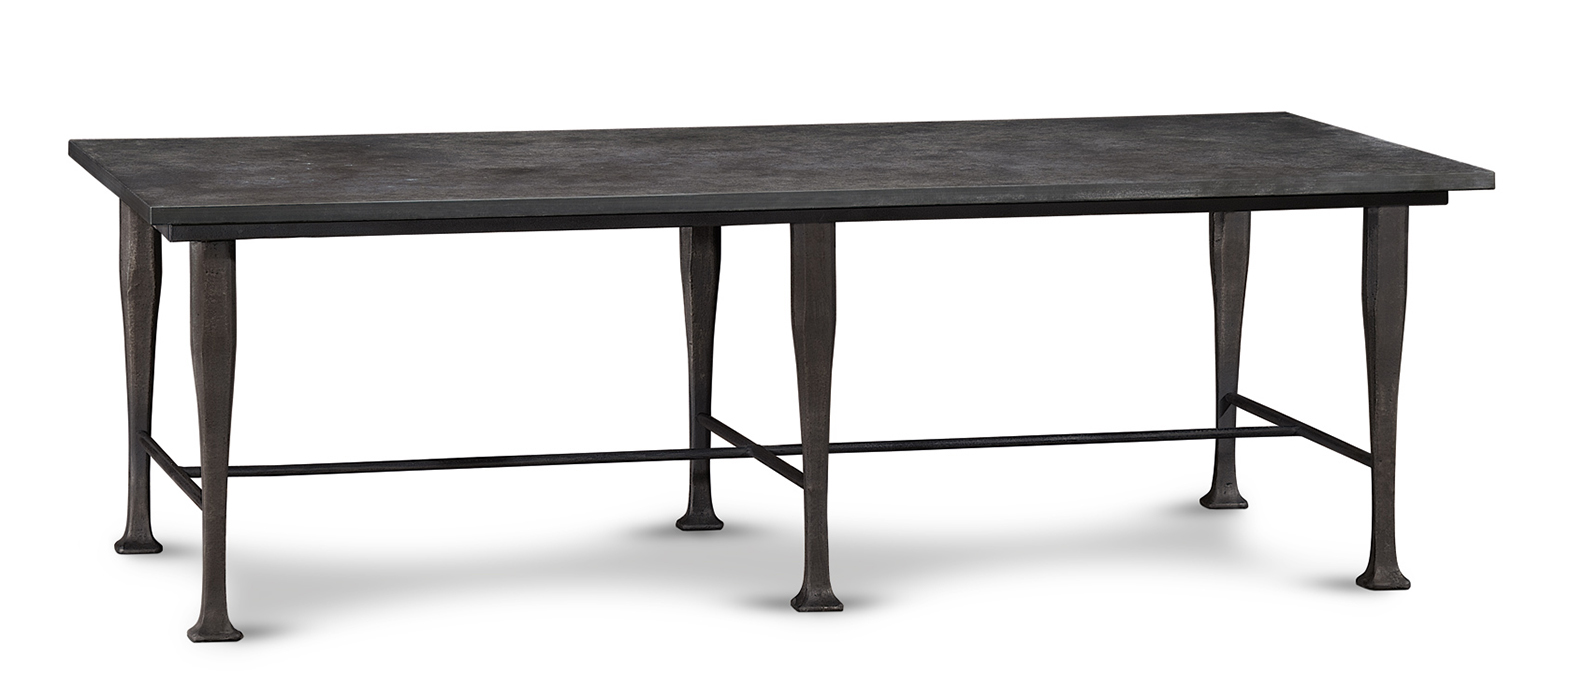 VILLIERS COCKTAIL TABLE 150 X 75